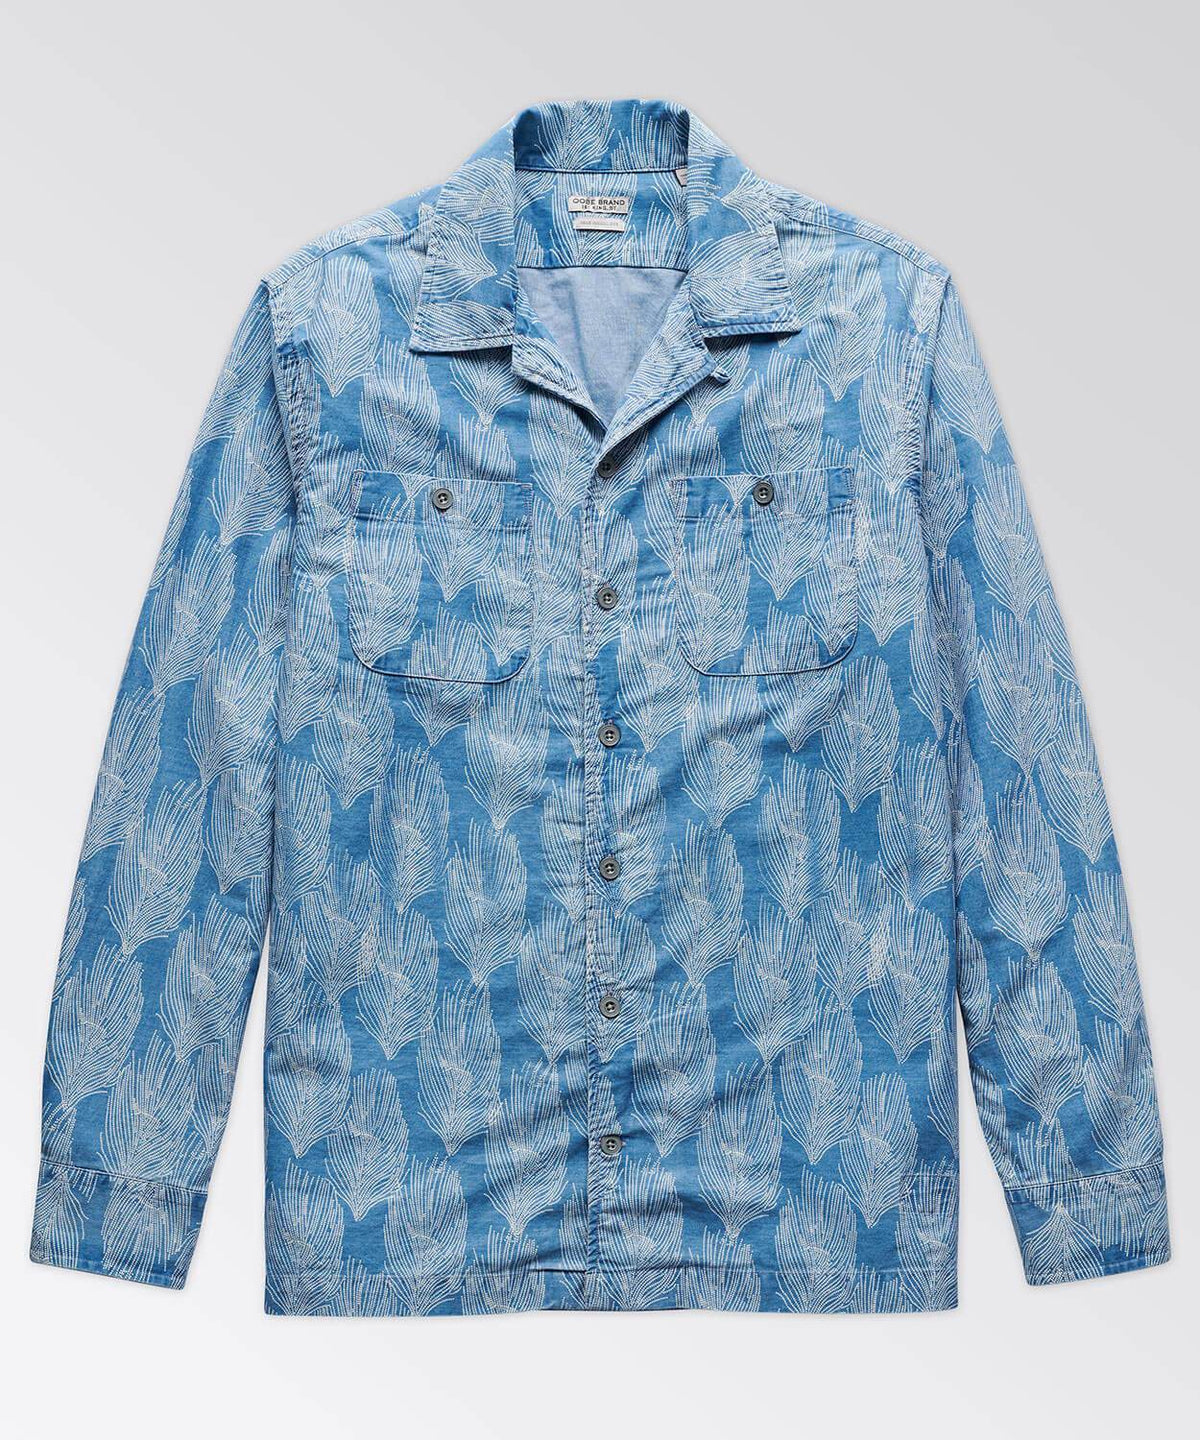 Hobson Indigo Camp Shirt